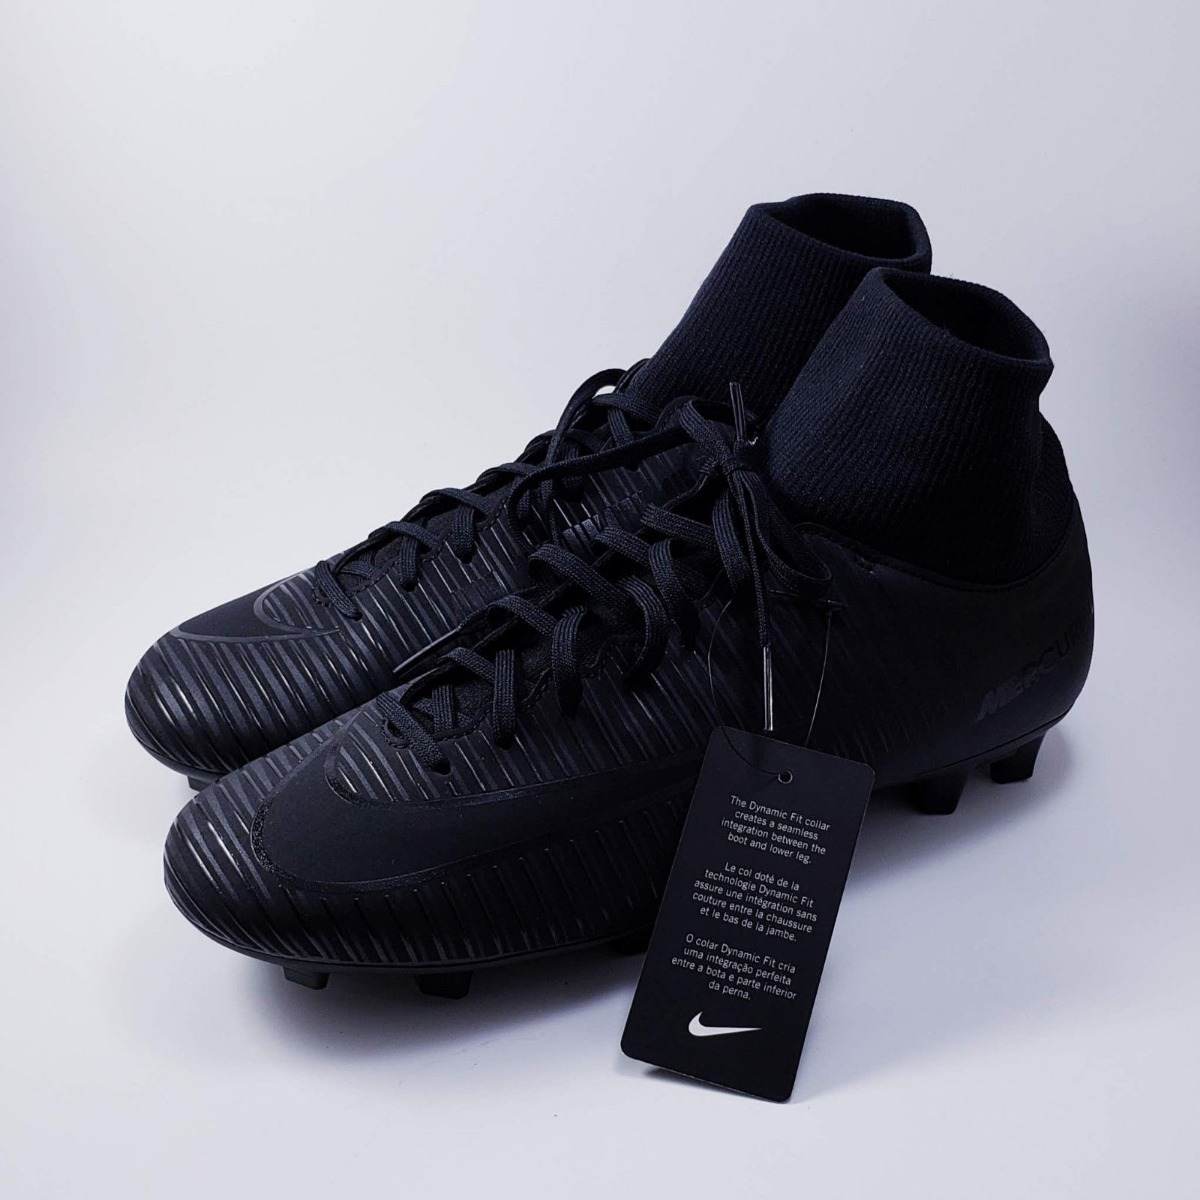 83ae6dbf4ba Tenis Nike Mercurial Victory Vi 6 Df Fg Cleats Triple Black ...